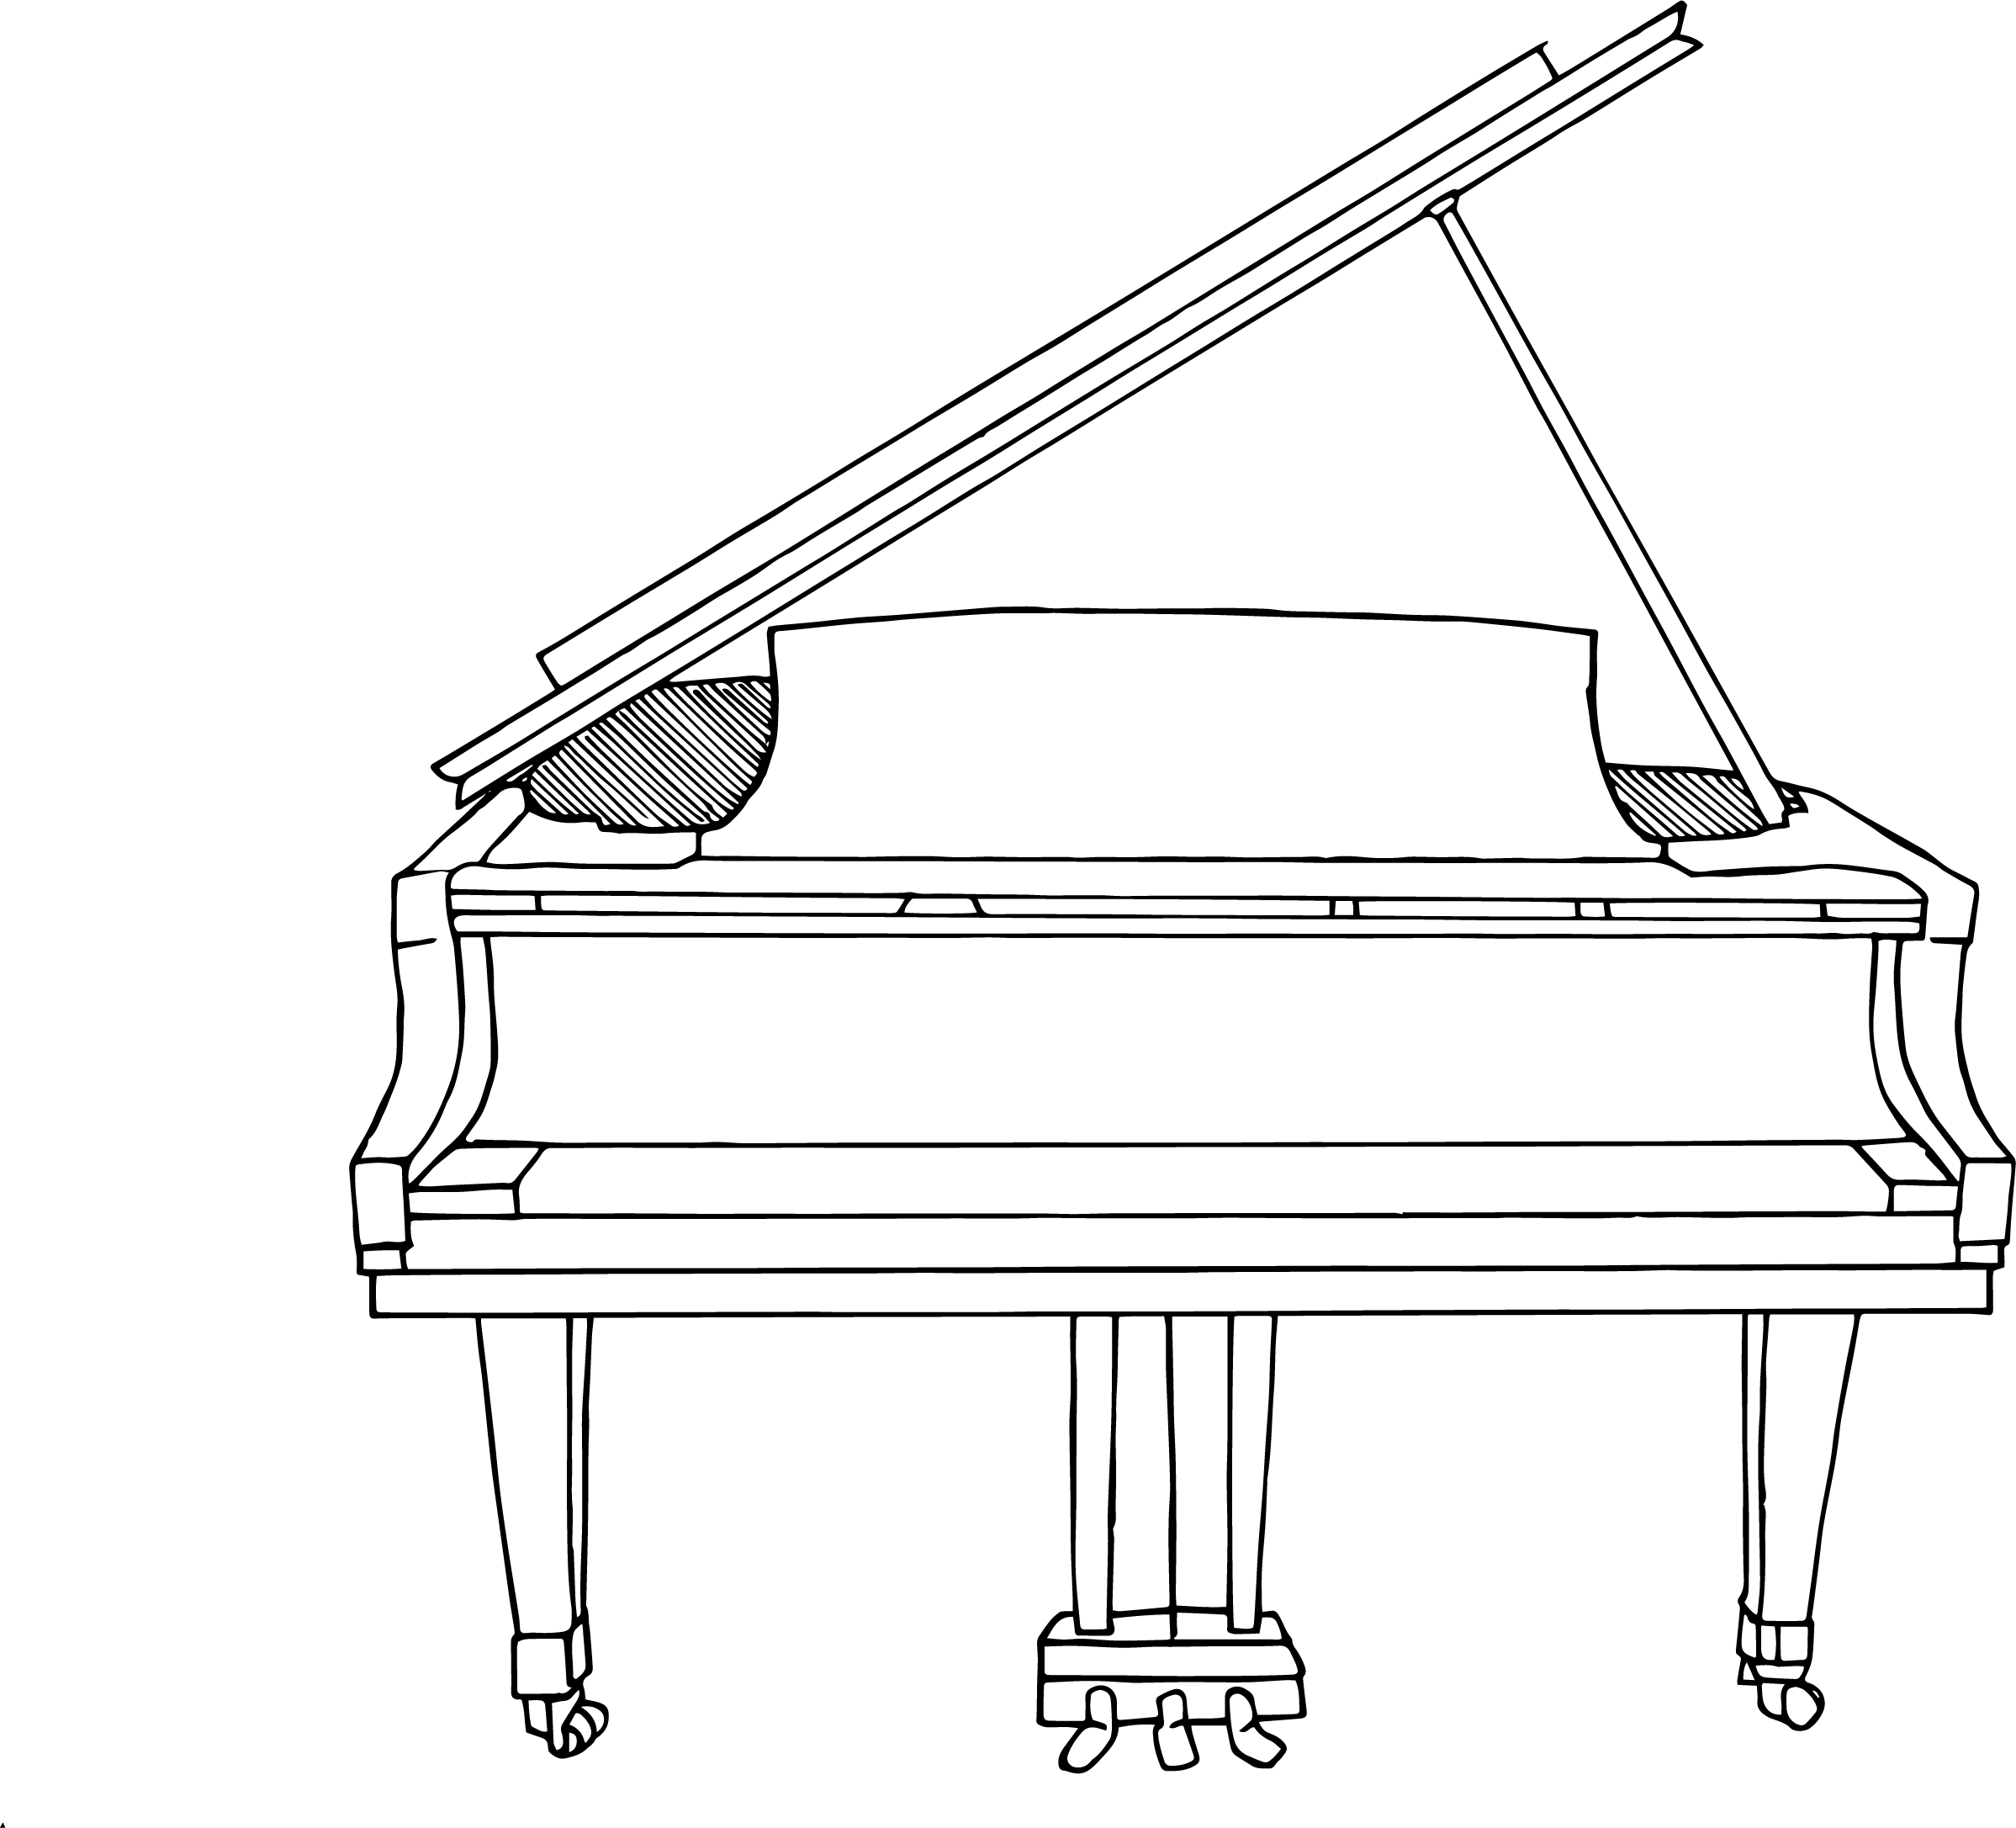 A keyless piano, whose keys were to be animated on a separate layer.